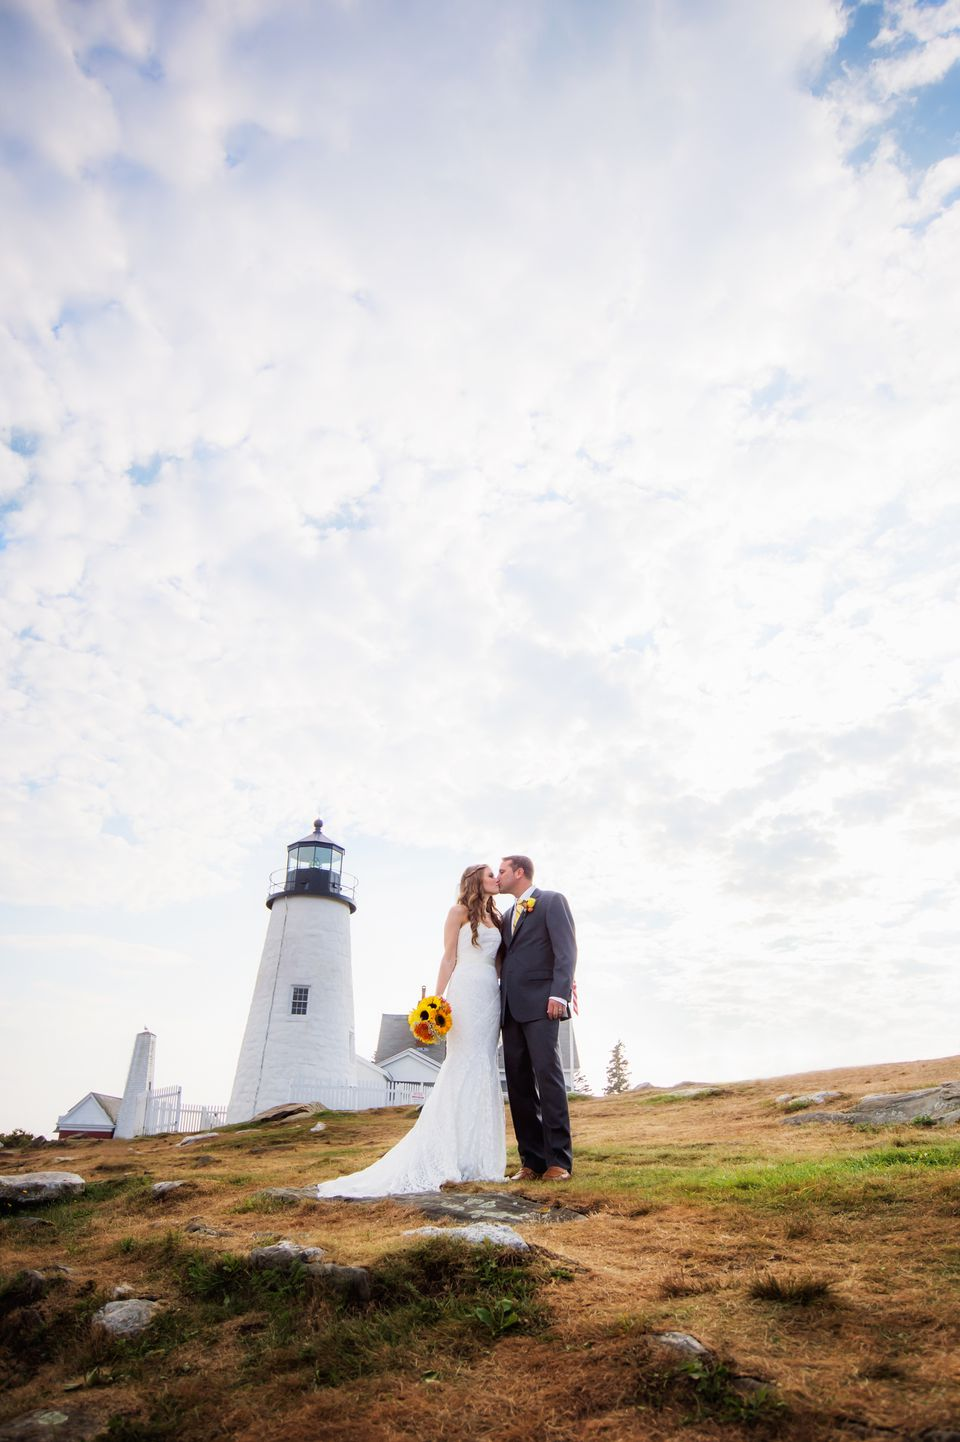 USA Maine Bristol Portrait Of Married Couple Kissing Lighthouse In Background